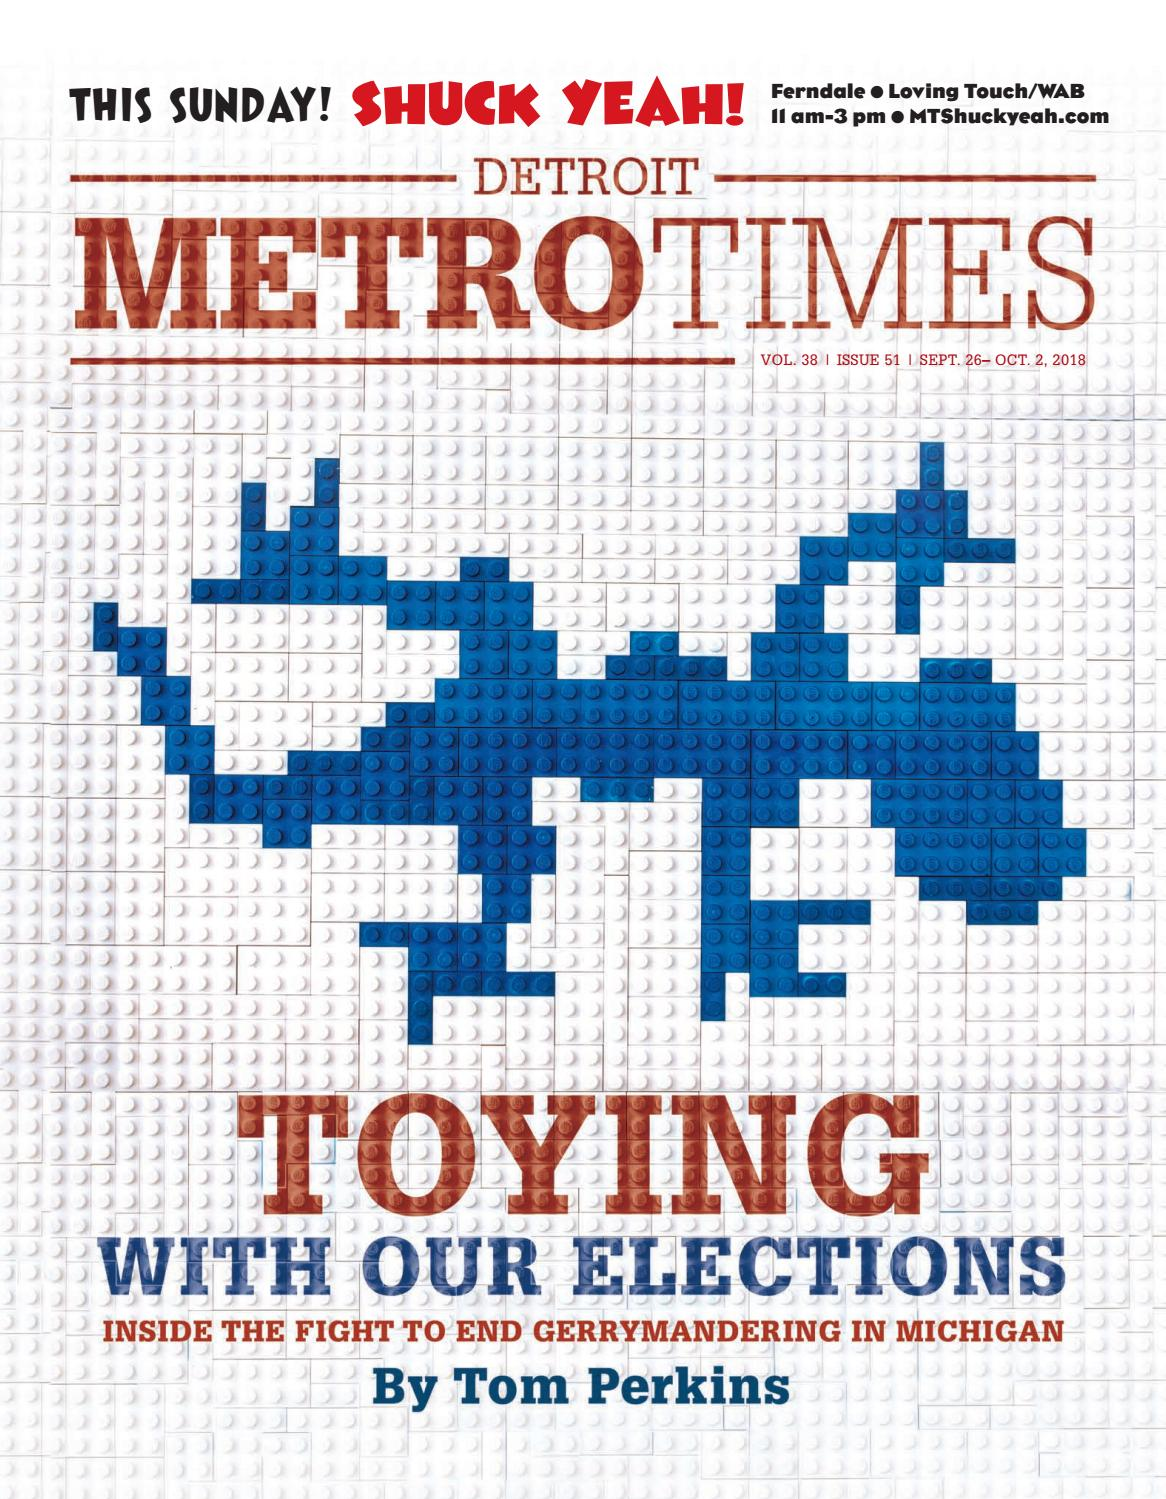 Metro Times 092618 by Euclid Media Group - issuu